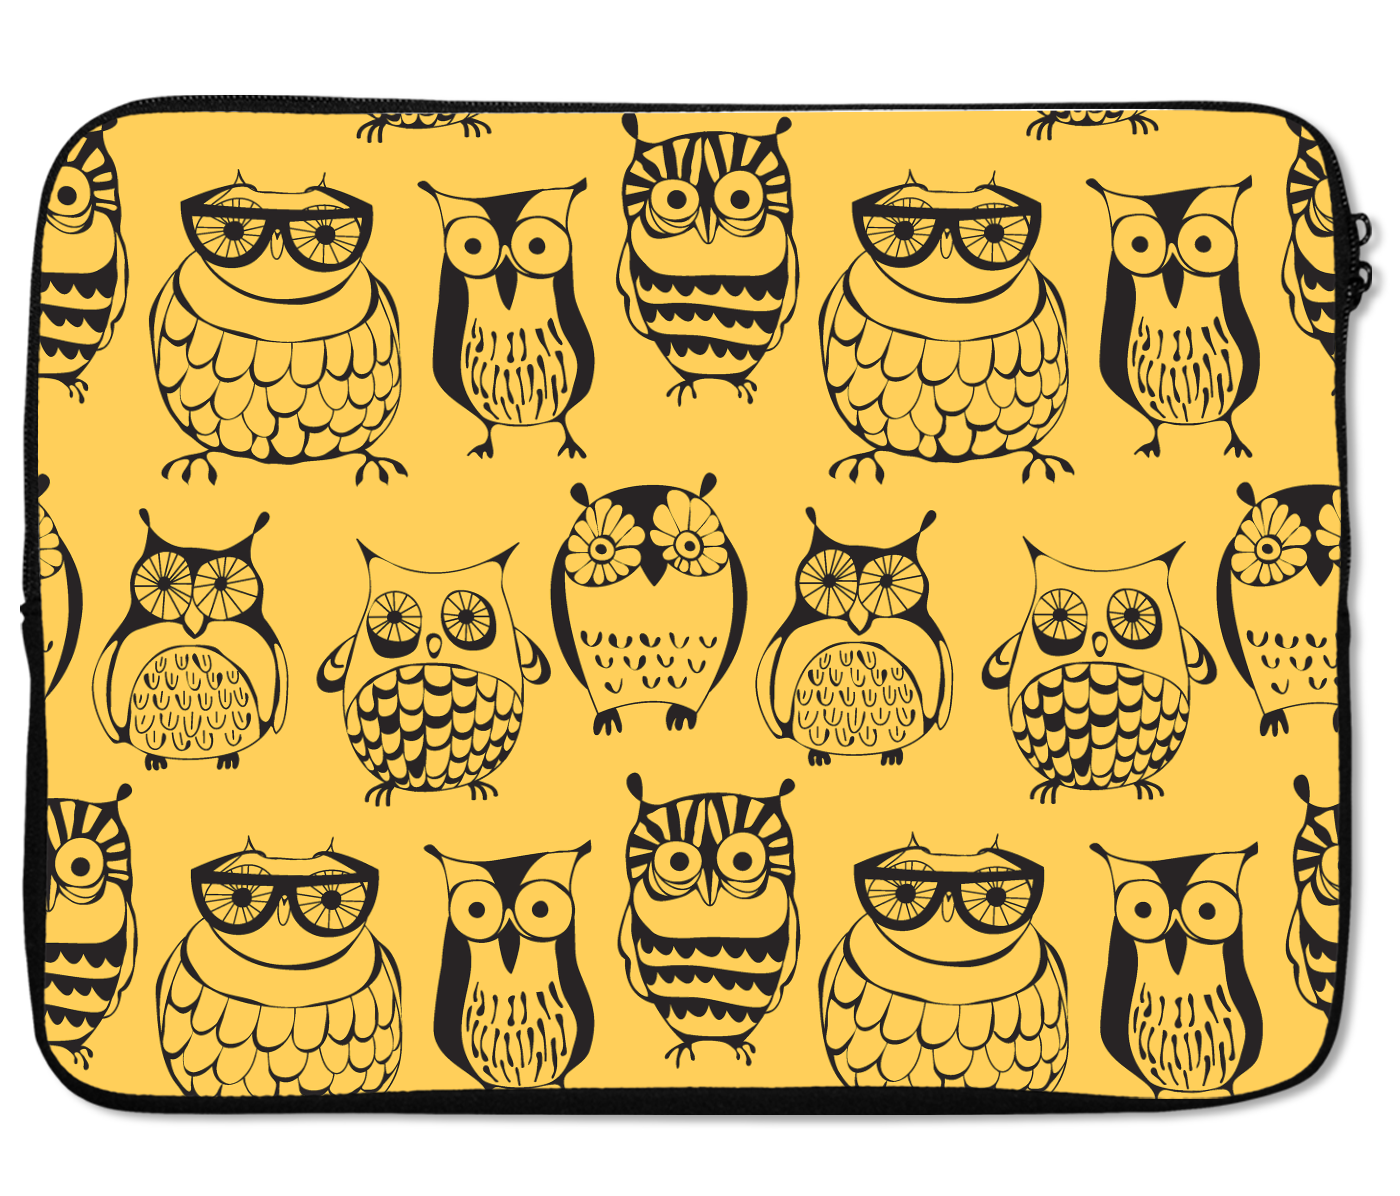 Laptops Tablet Sleeves Nerdy Owls Family Pattern Premium Quality Neoprene Laptop Protection